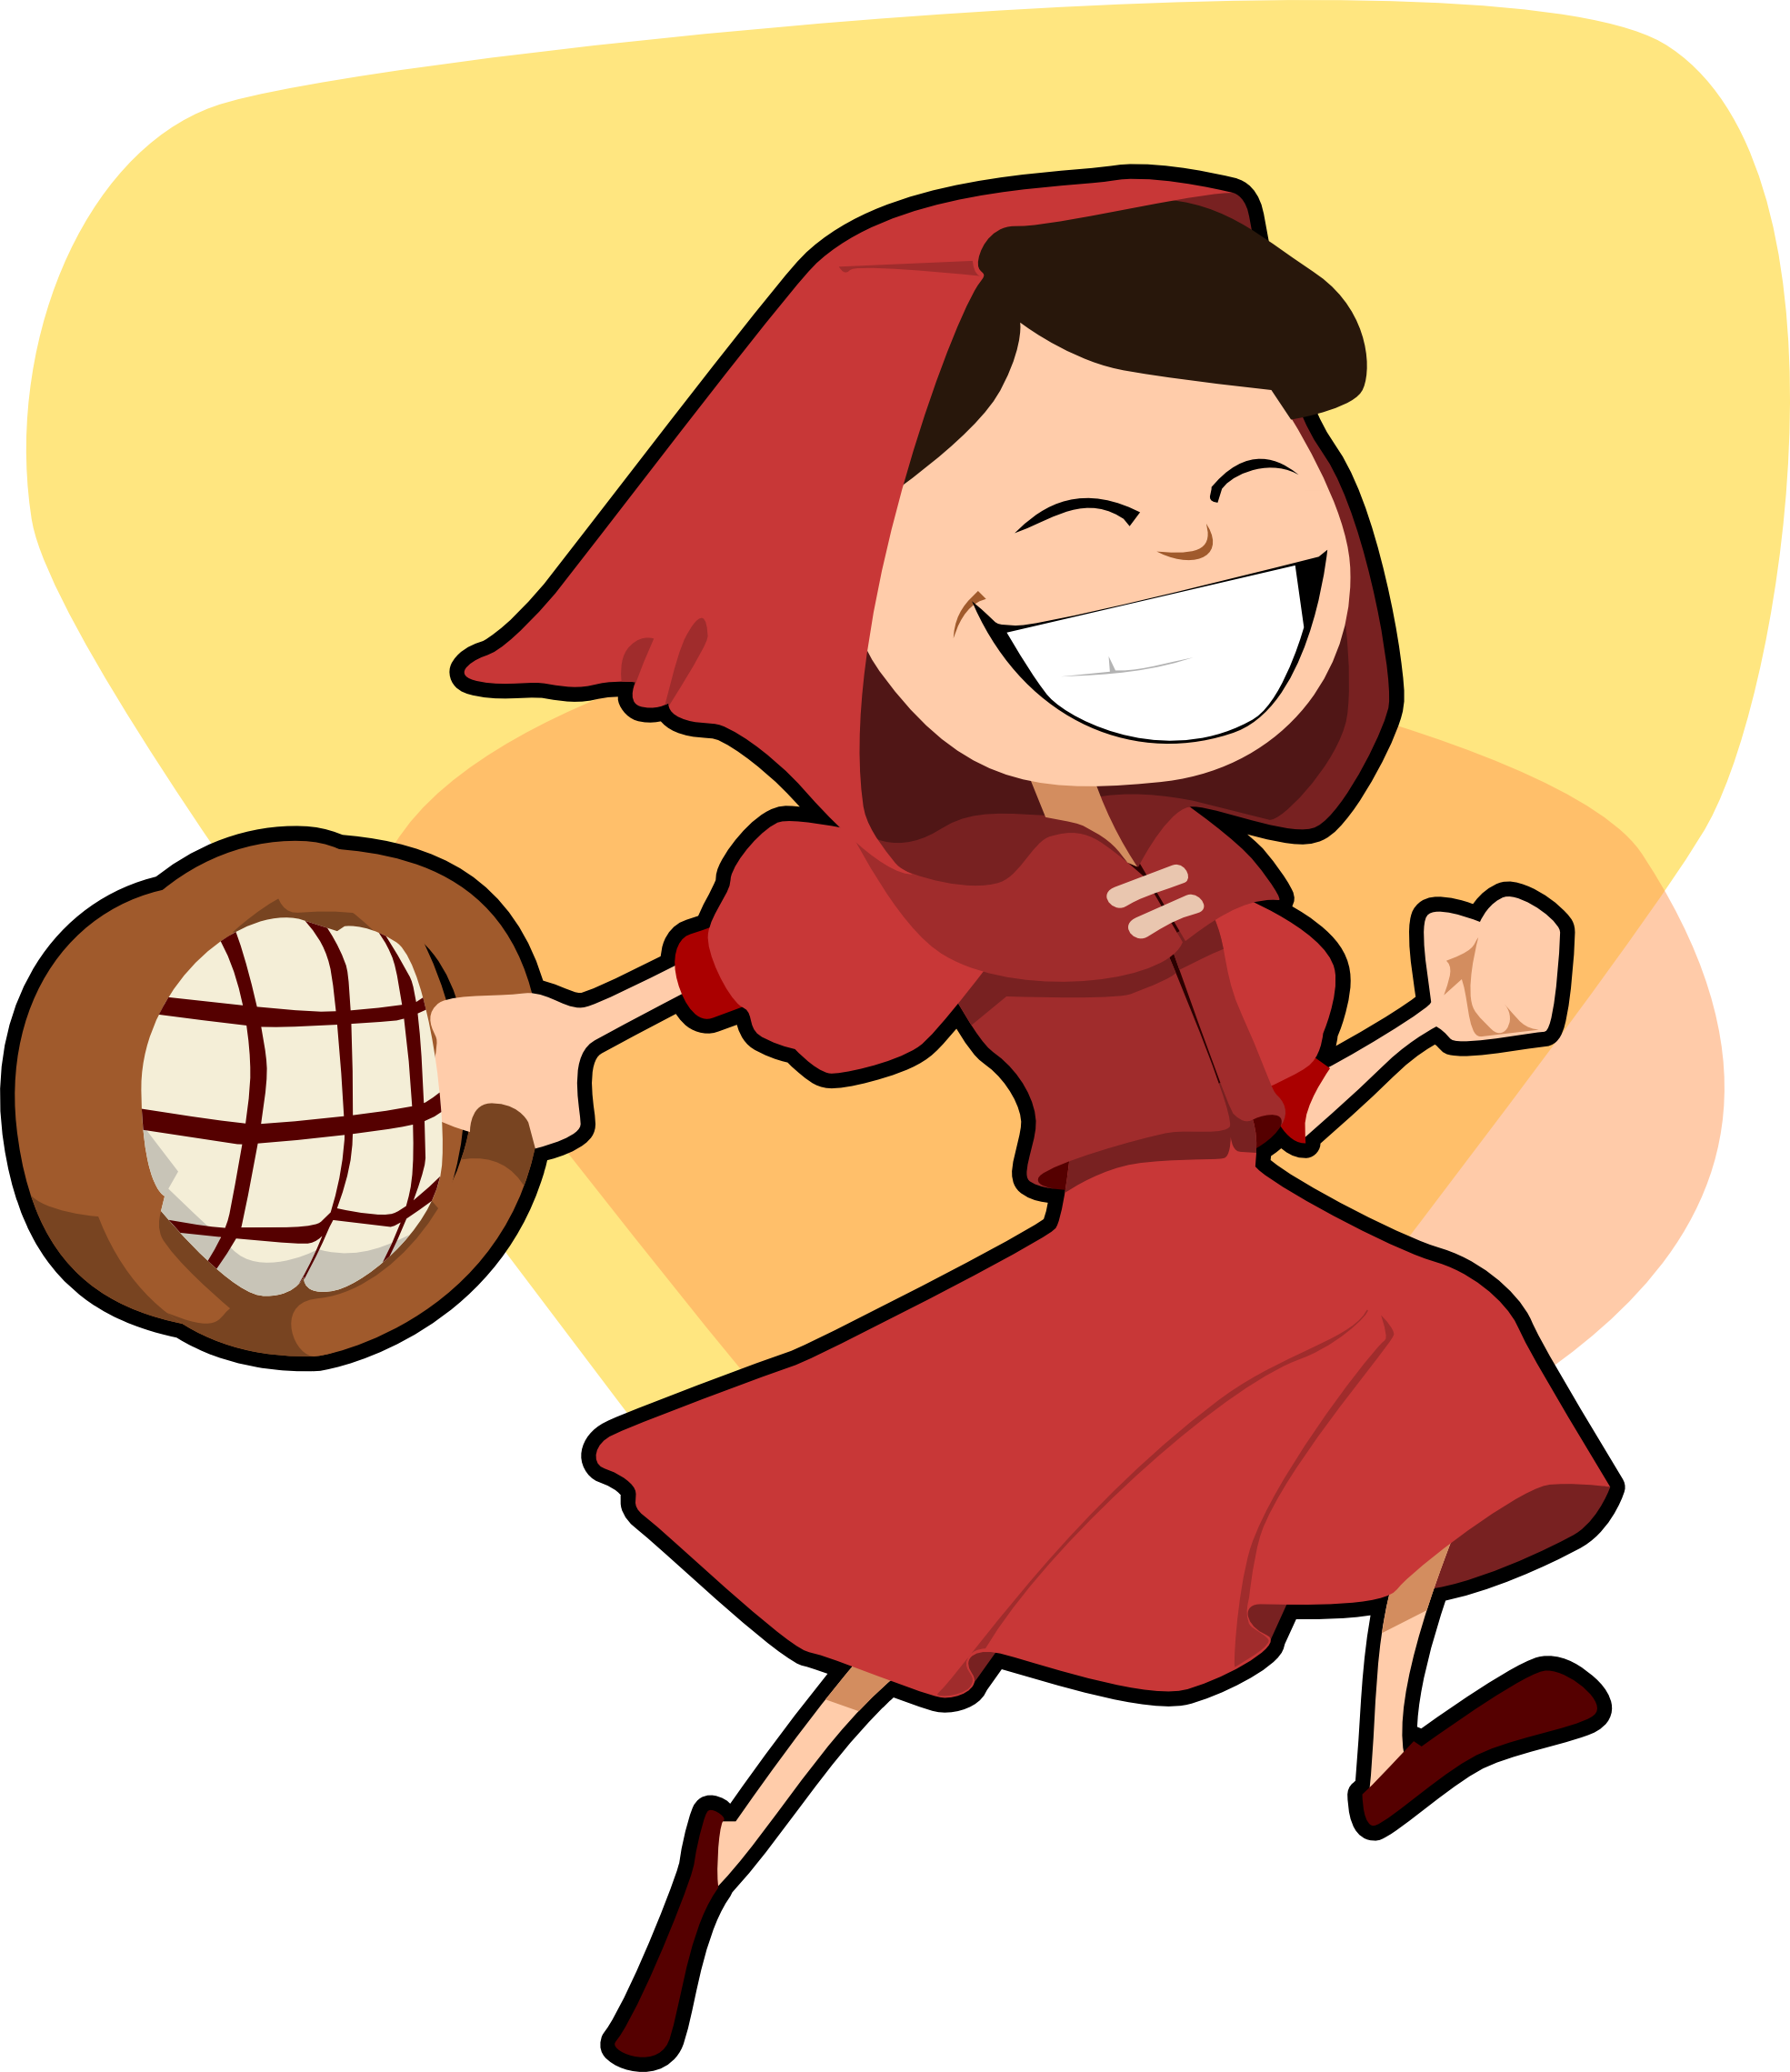 little red riding hood scalable vector graphics ... - ClipArt Best ...